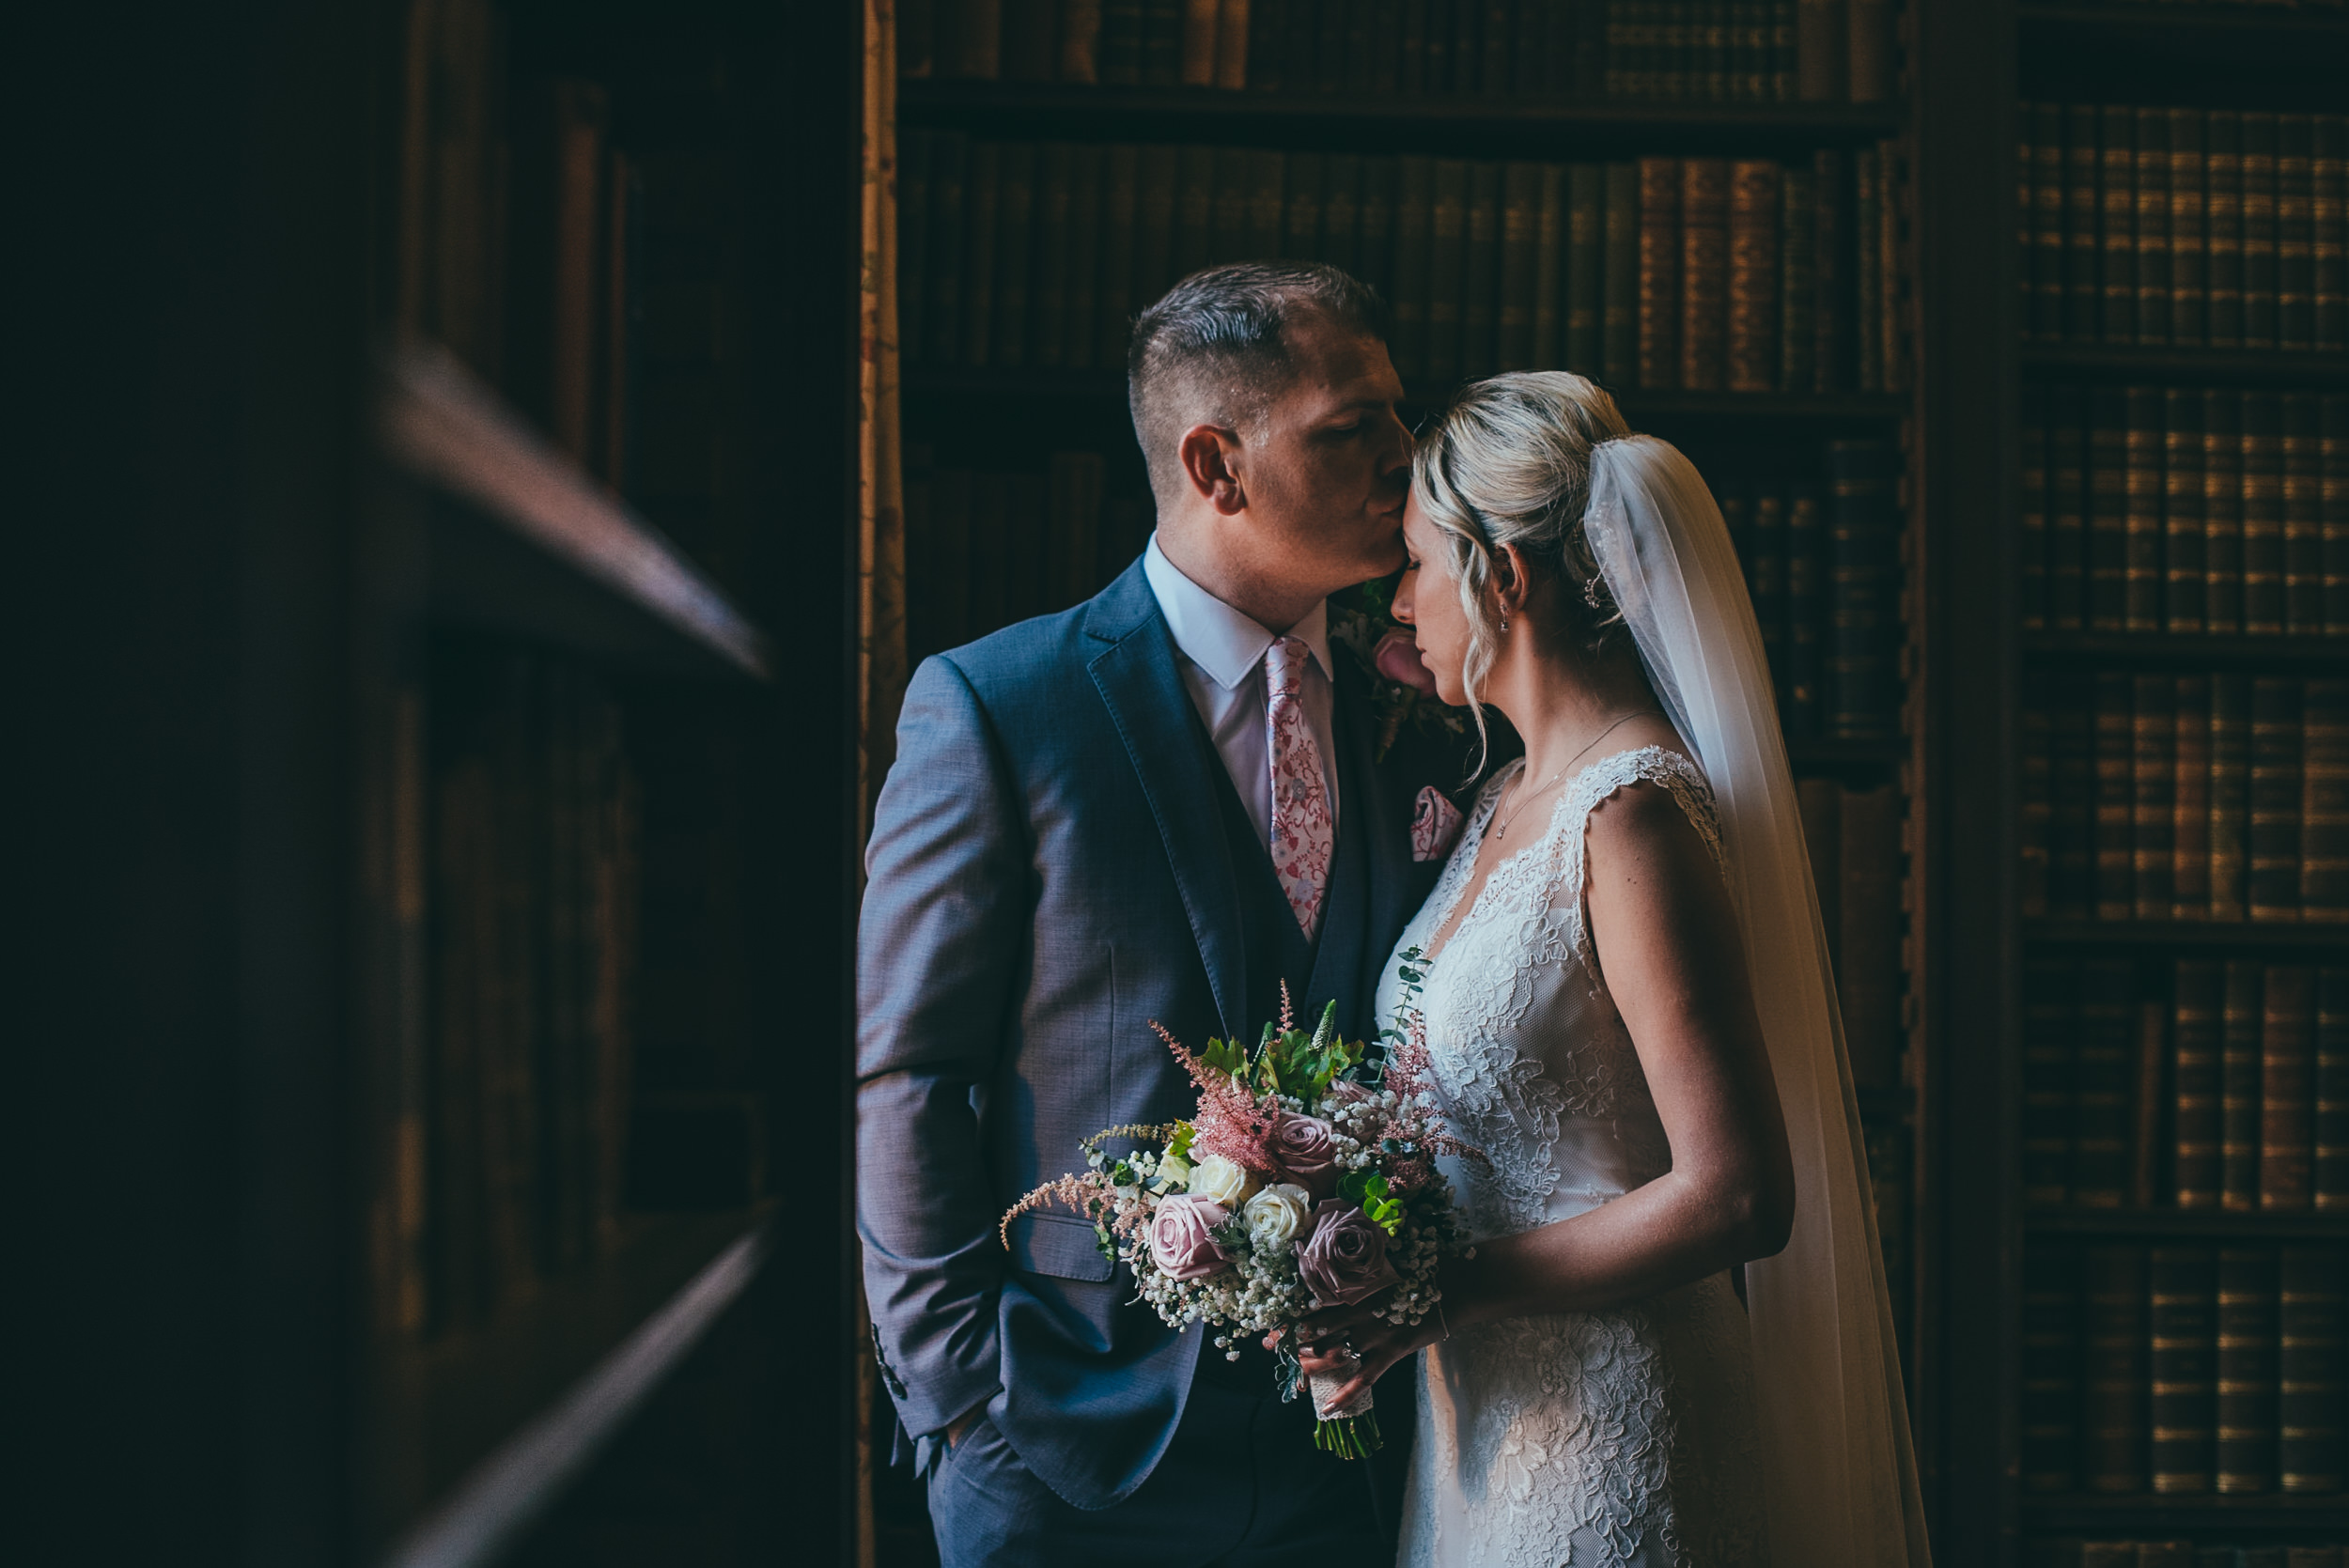 Winter wedding at Norwood Park in Southwell, Nottingham. Image by Matt Andrew Photography